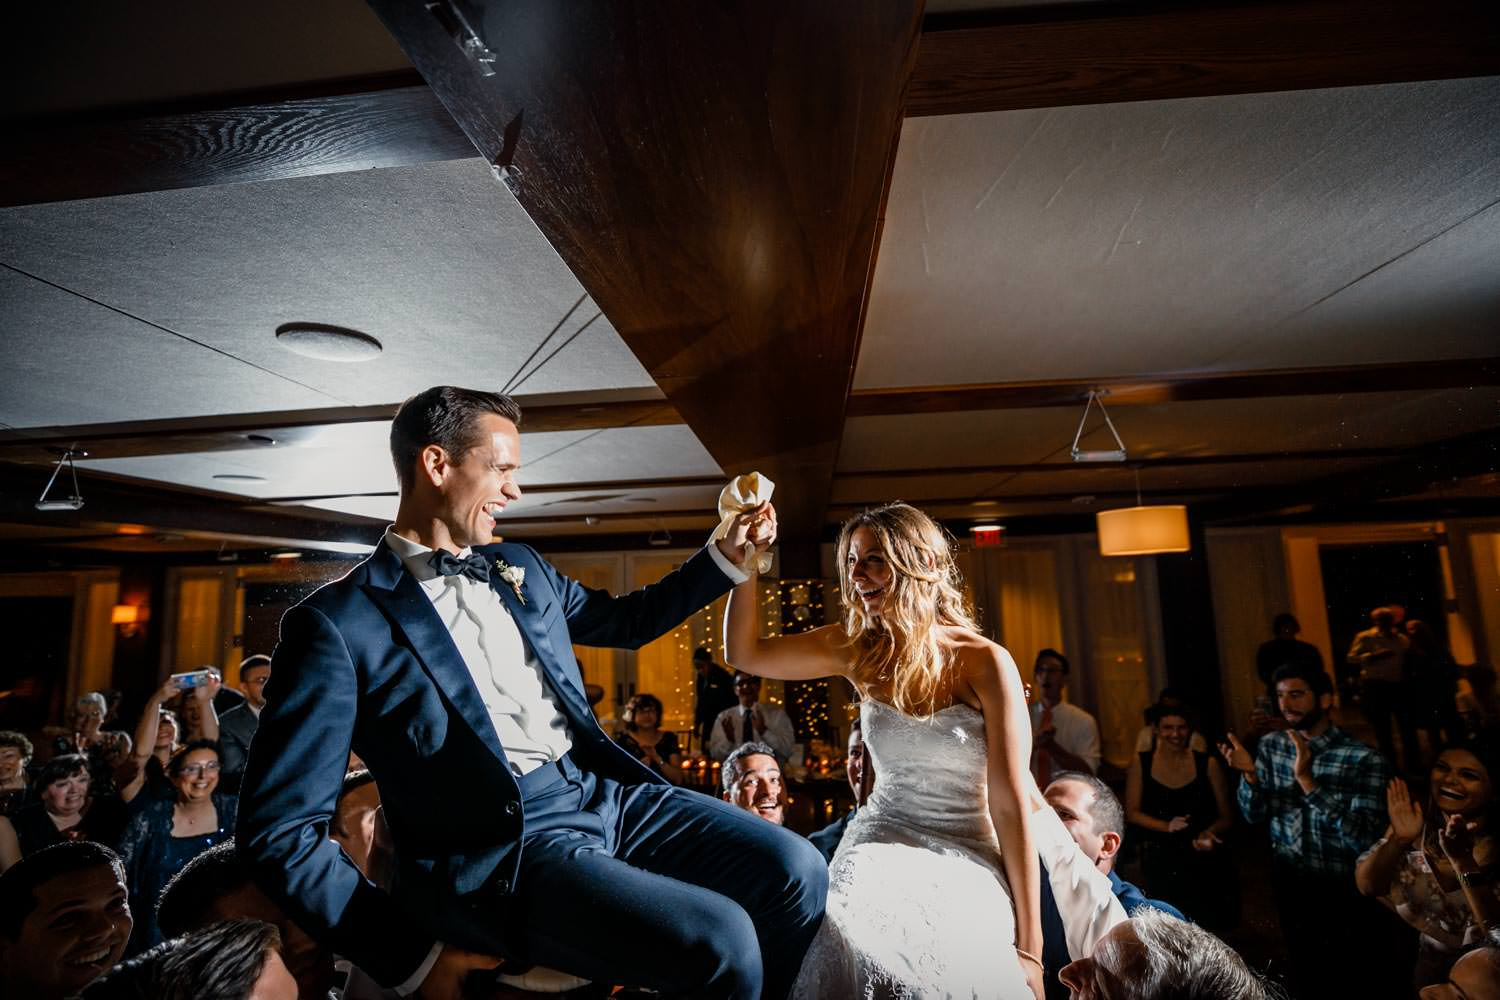 bride and groom on chairs lifted in to the air for wedding dance